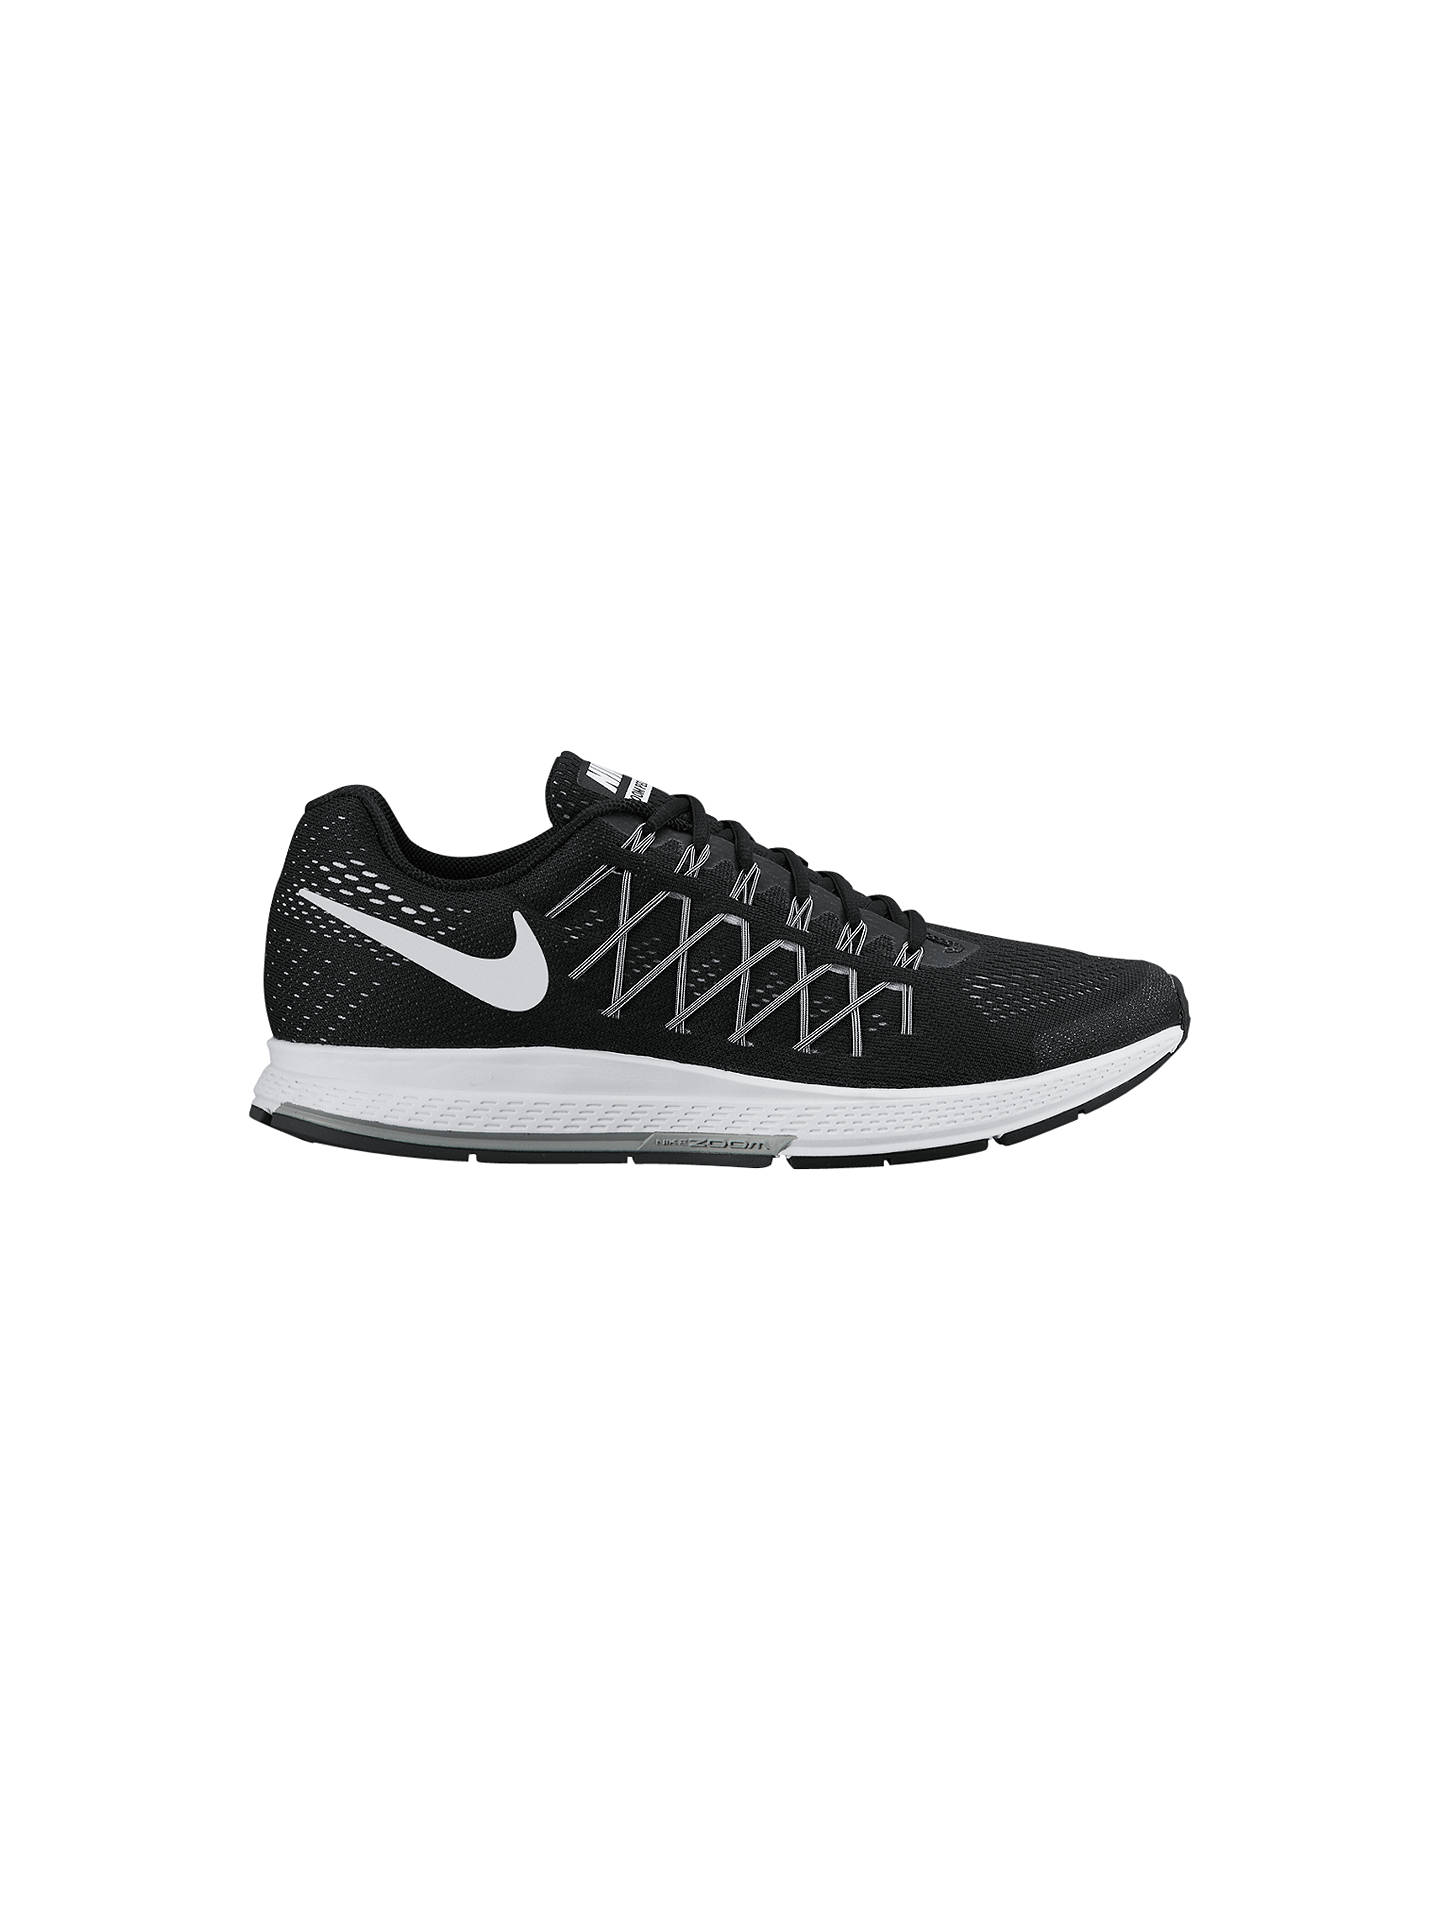 new concept 7ab66 a3288 Buy Nike Air Zoom Pegasus 32 Men's Running Shoes, Black/Dark Grey, 7 ...